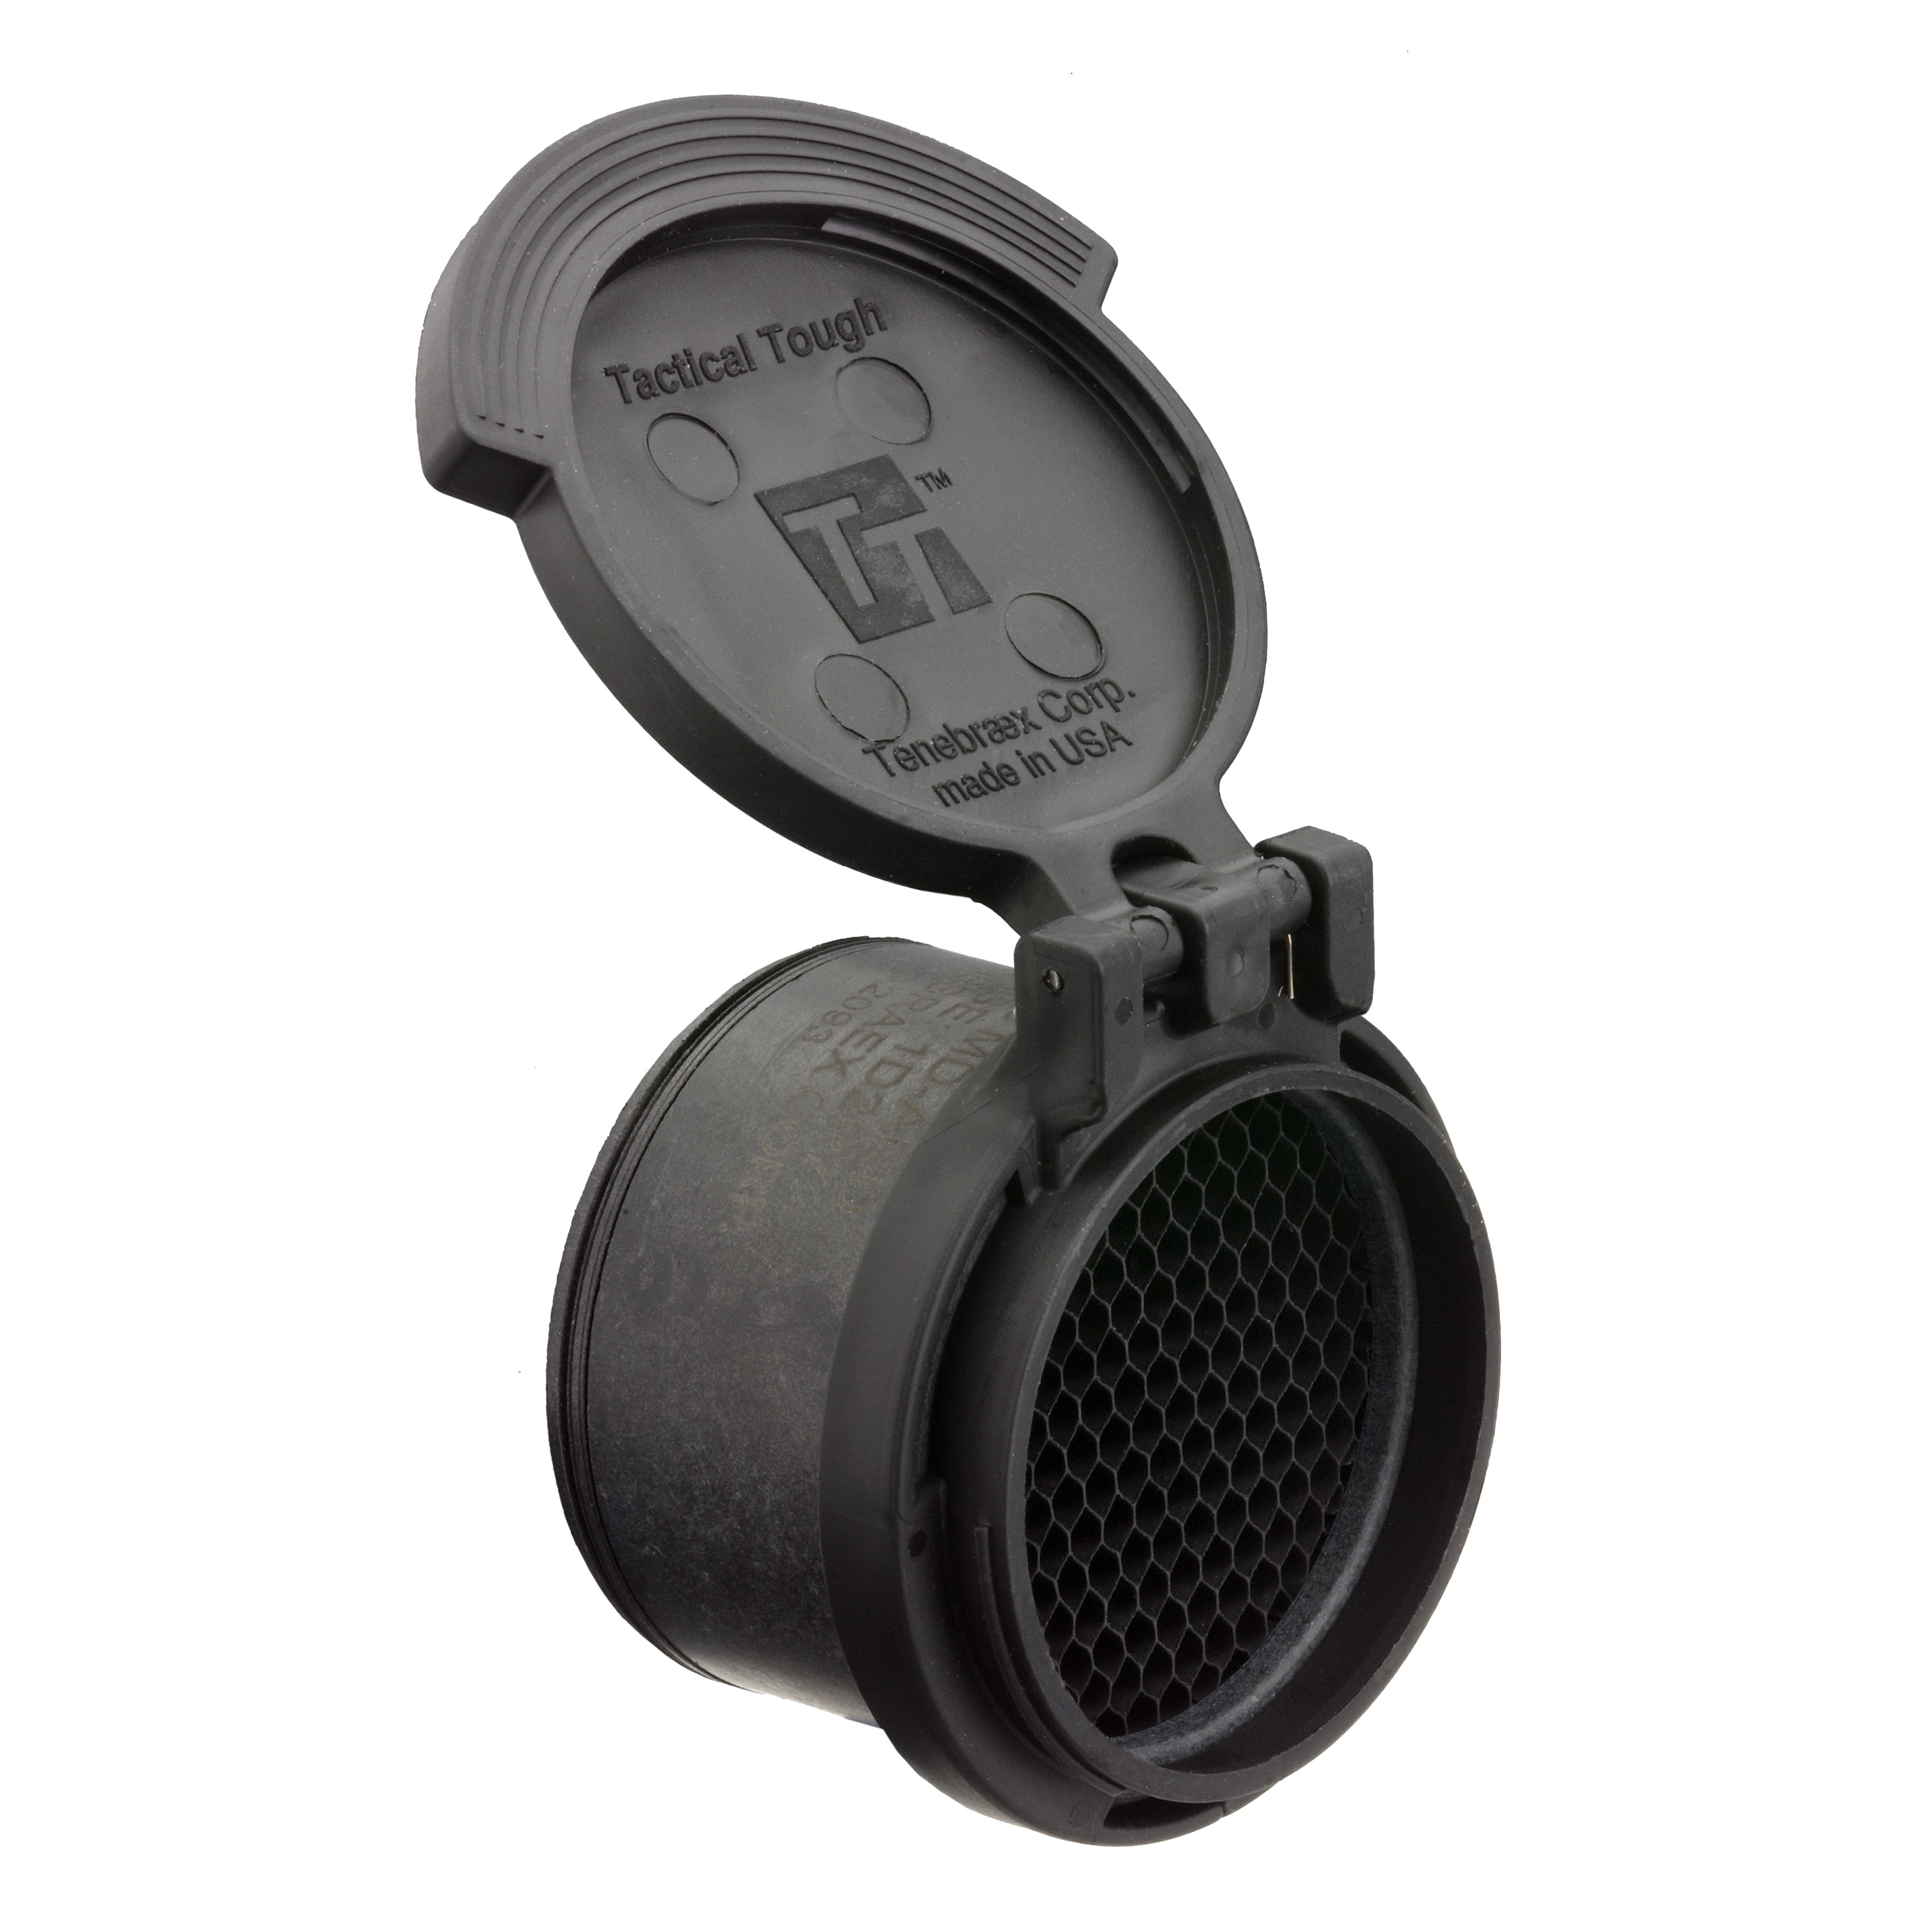 Trijicon Tenebraex killFLASH Anti-Reflection Device 6x48mm ACOG Scope, Black by Trijicon